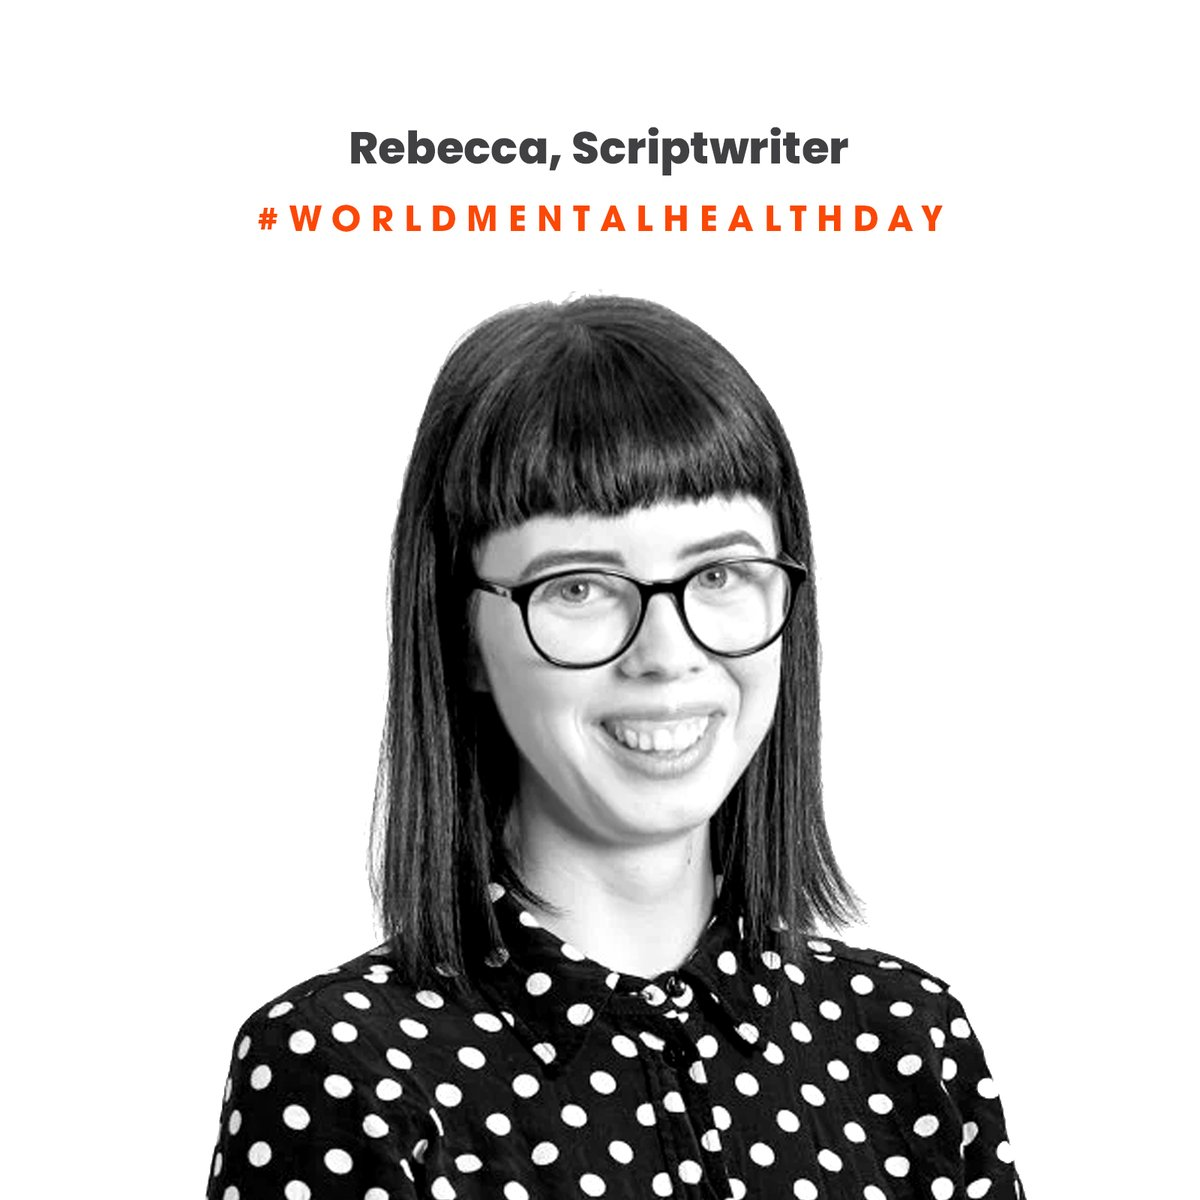 For the final of our #worldmentalhealthday chats with the Playground Games team we have Rebecca. Remember to take a moment to reflect and ask yourself, as well as others, how are we doing. https://t.co/YFQkomSsY2